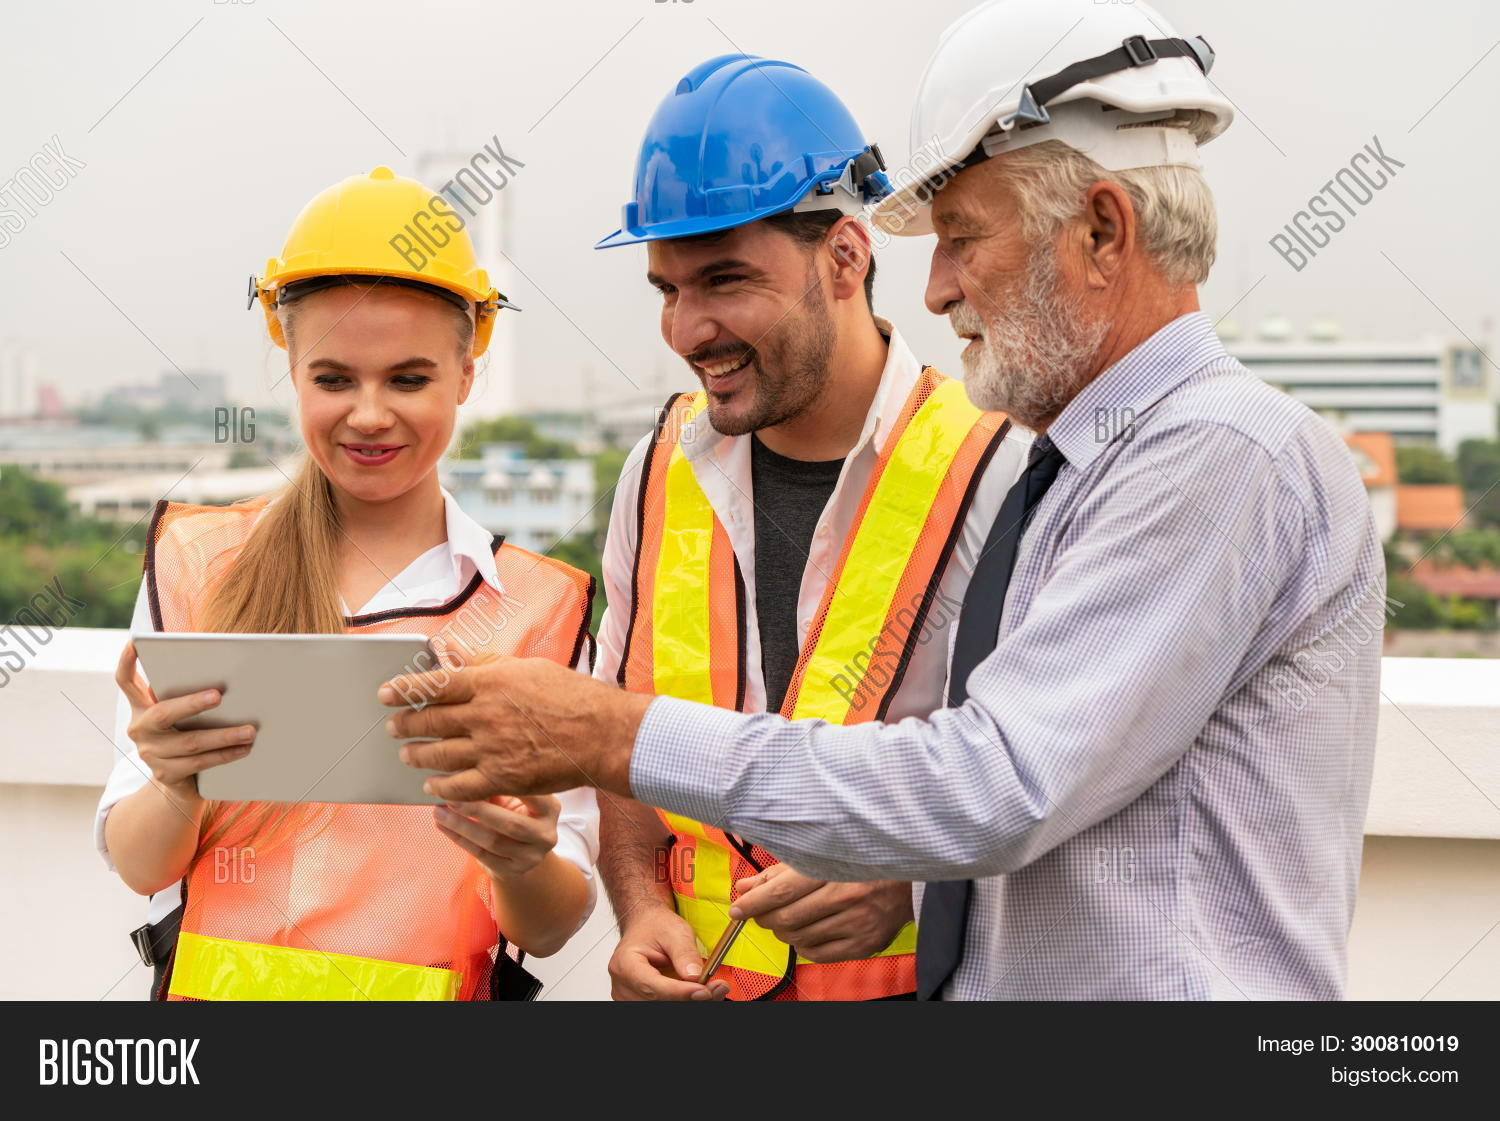 architect,blueprint,building,business,businessman,businesswoman,busy,computer,construction,constructor,contractor,cooperation,design,document,engineer,engineering,expertise,foreman,group,happy,hard,hardhat,hat,helmet,house,industry,laptop,man,manager,meeting,men,occupation,outdoors,paperwork,people,plan,professional,project,safety,site,tablet,team,teamwork,woman,women,work,worker,working,young